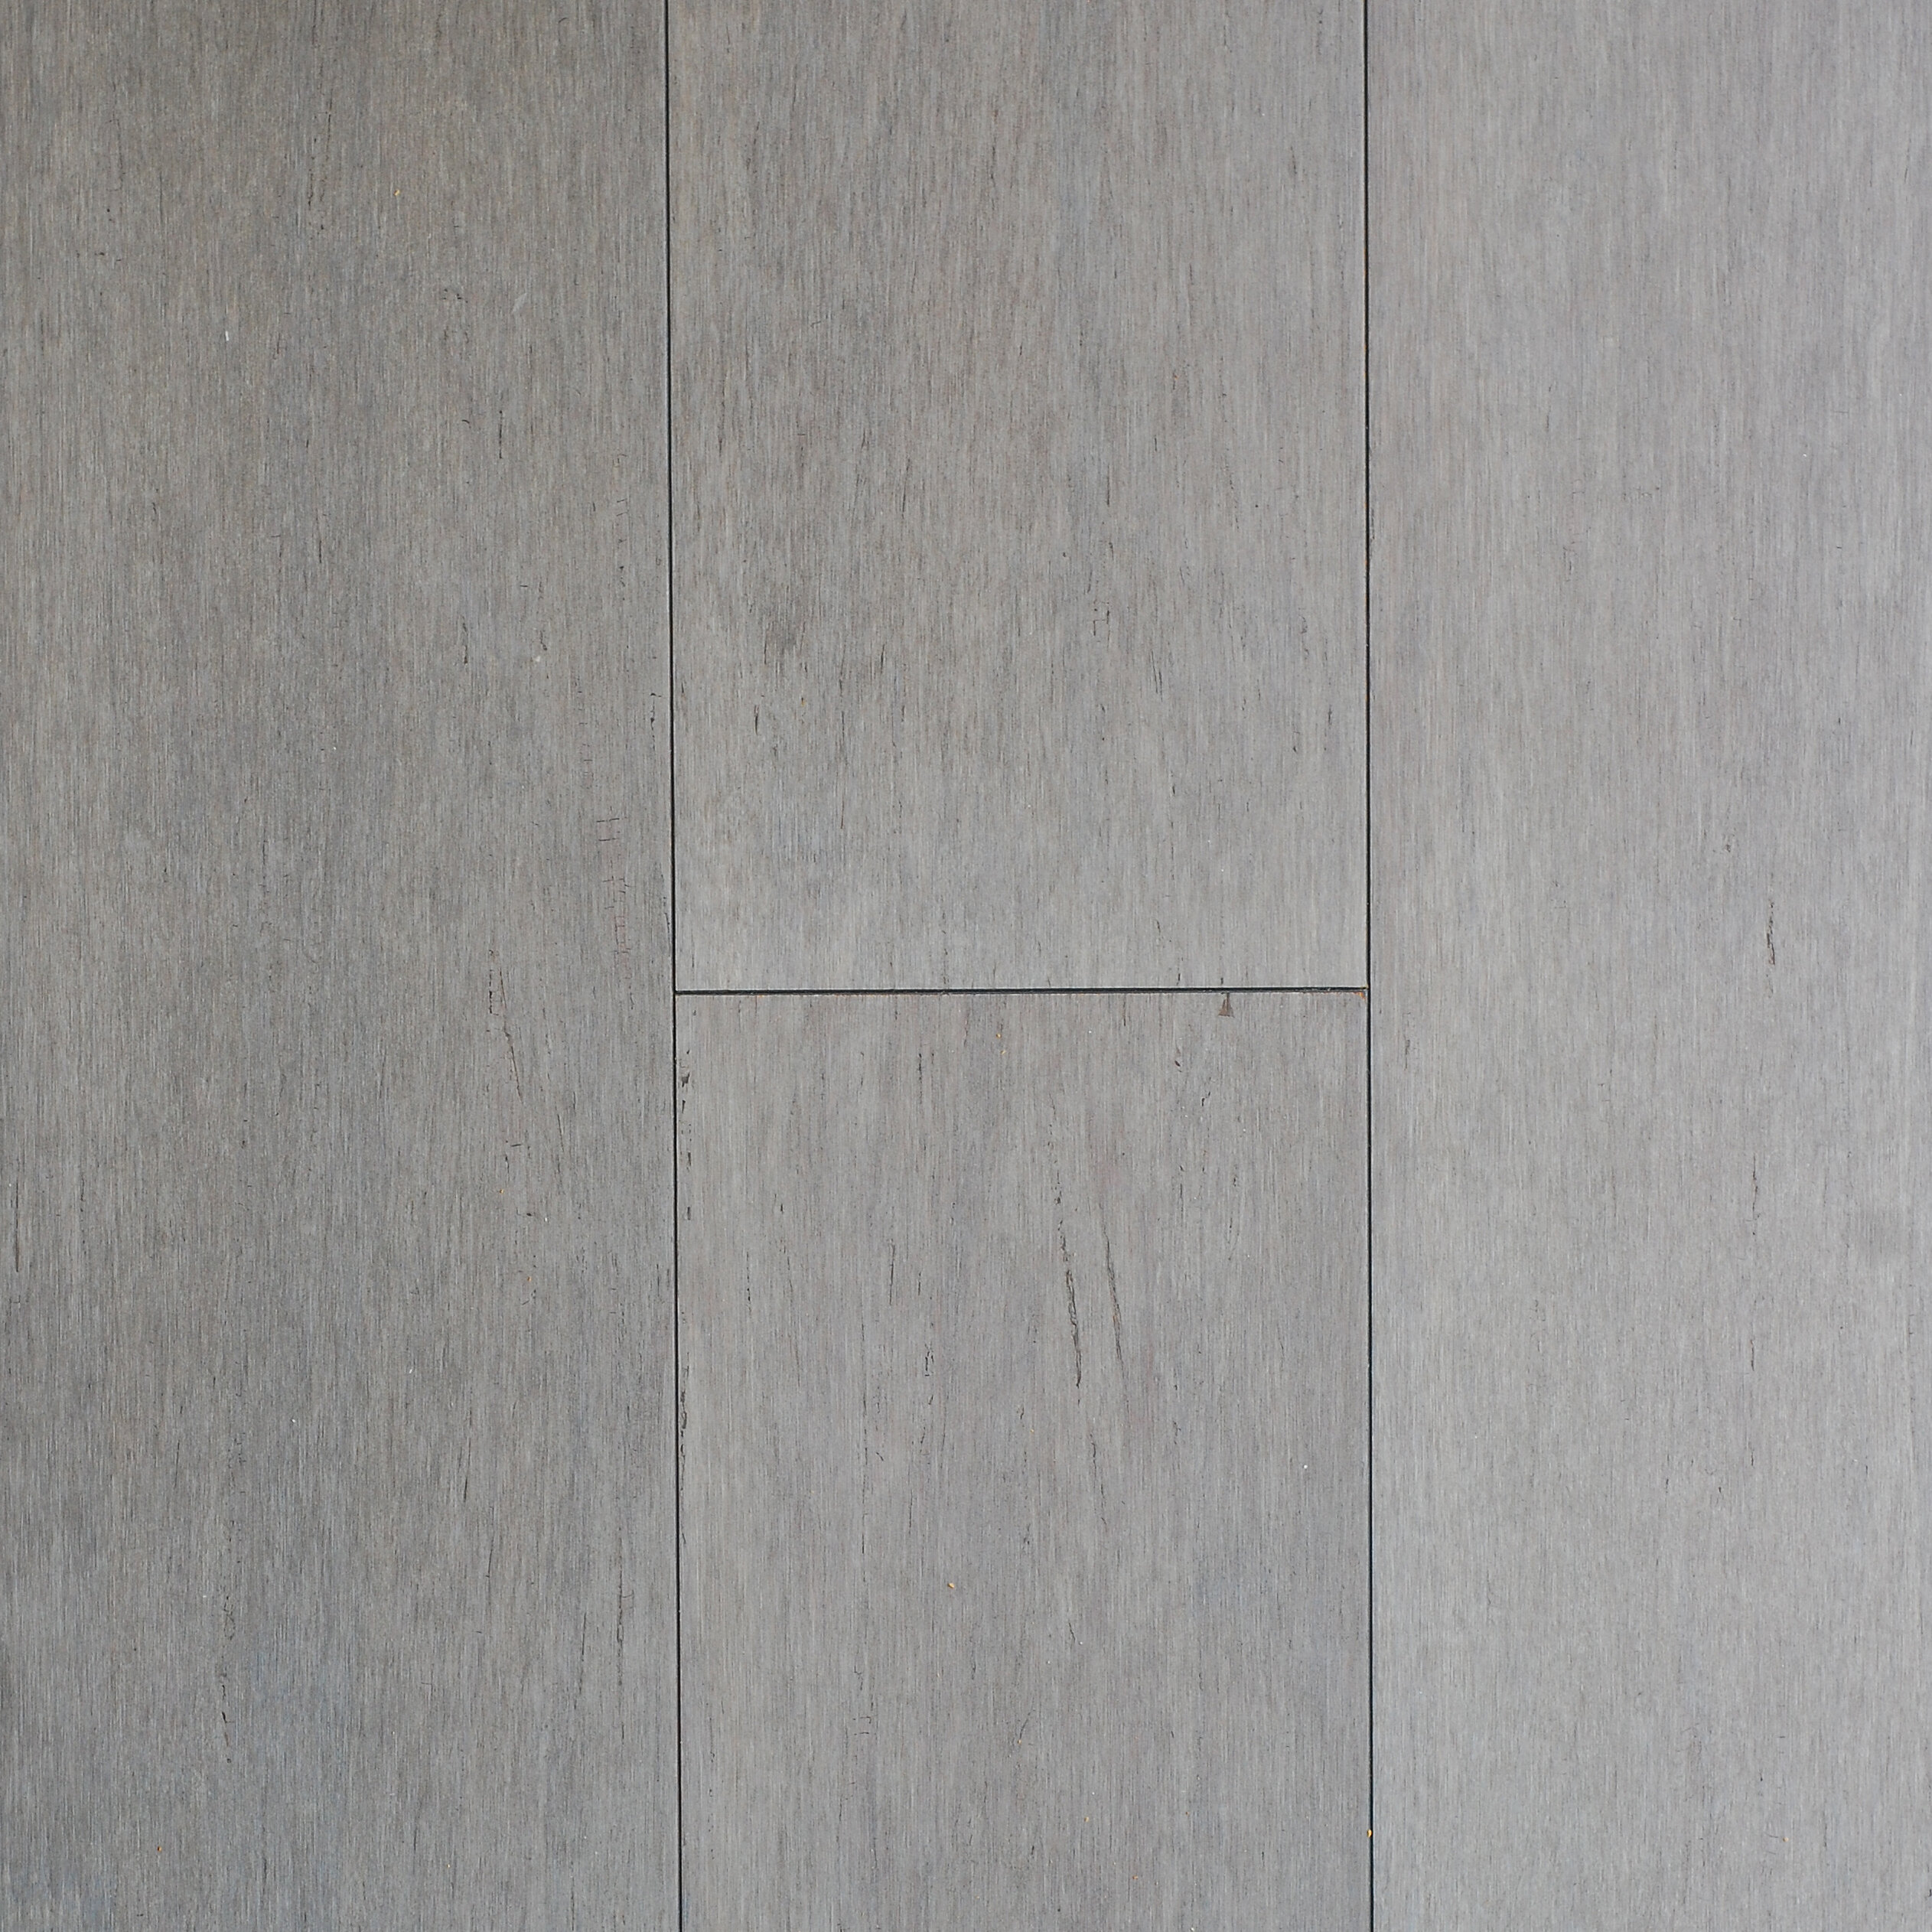 "EC usion Flooring 4 1 2"" Solid Lock Strandwoven Bamboo Flooring"